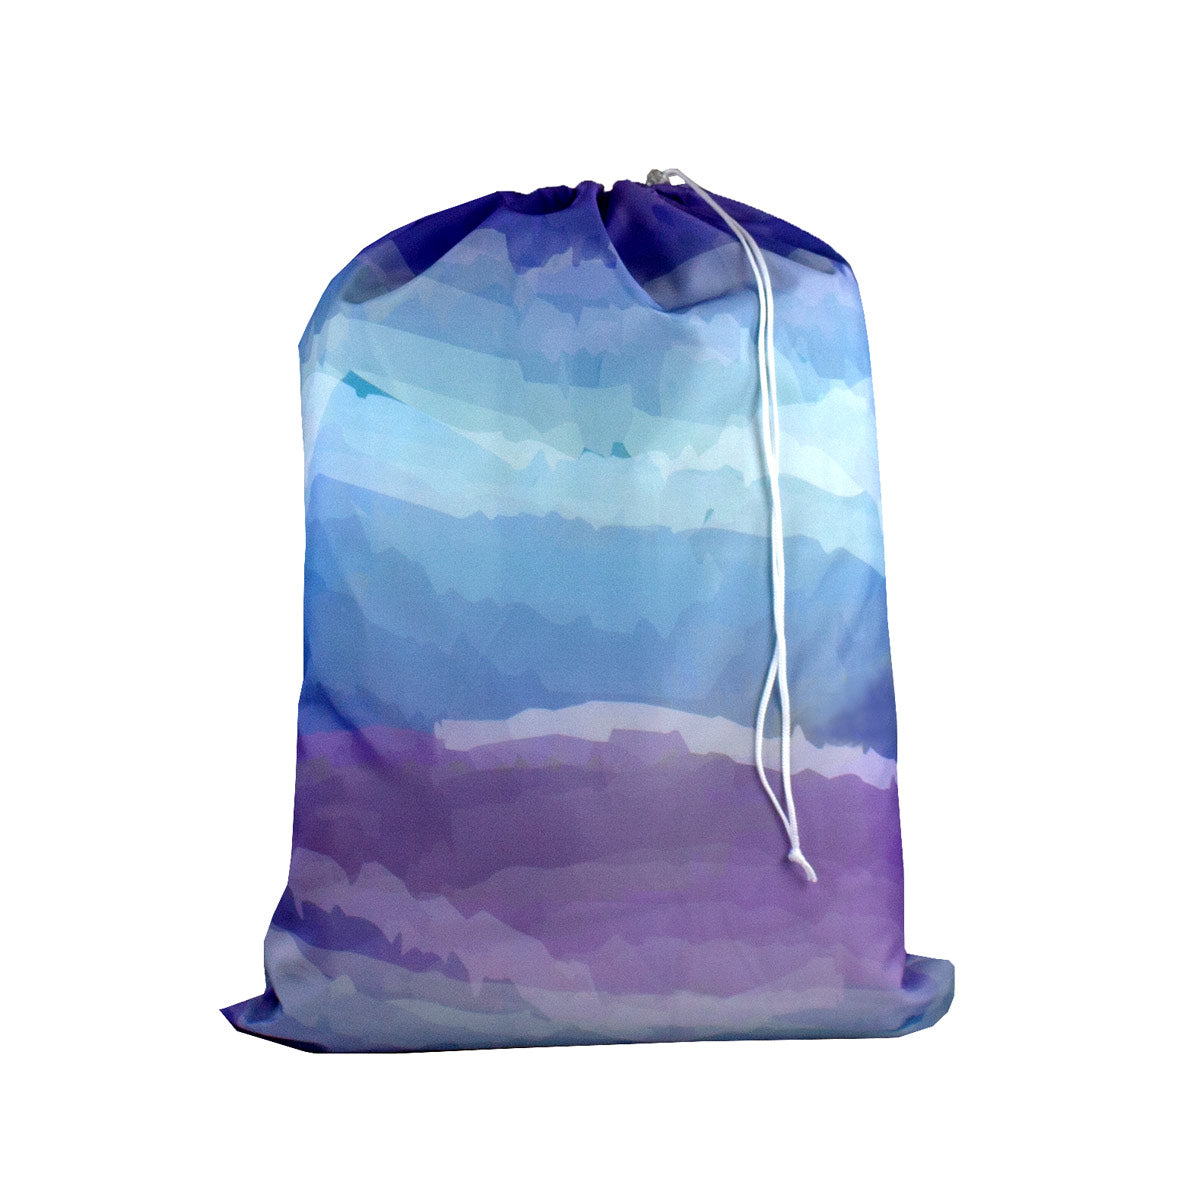 Designer Laundry Bag - Ombre